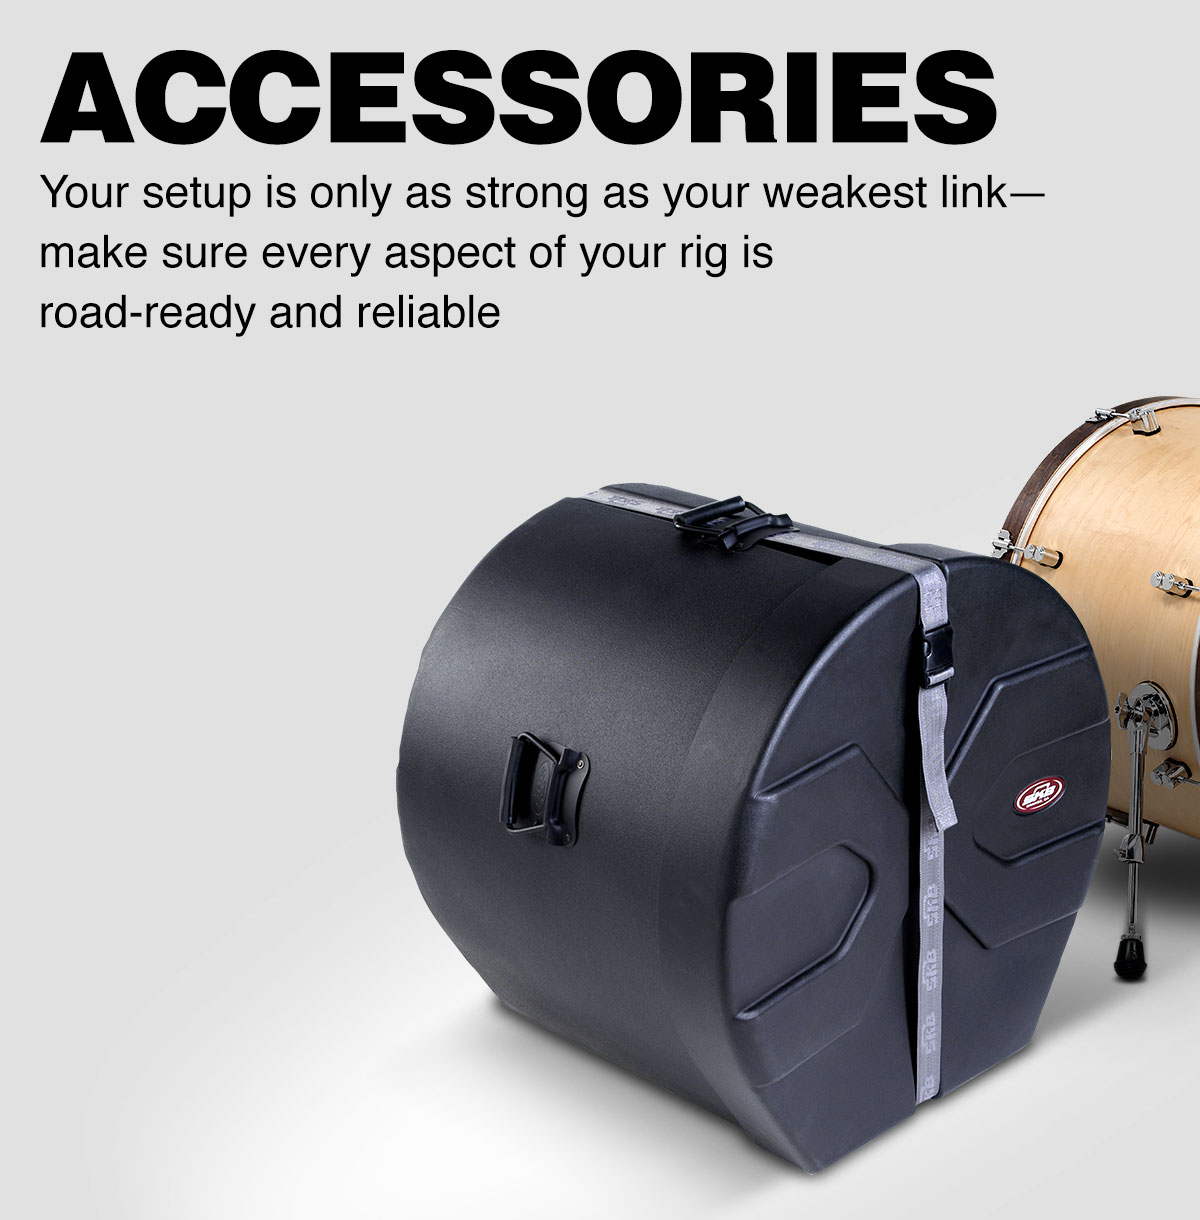 Accessories. Your setup is only as strong as your weakest link; make sure every aspect of your rig is road-ready and reliable